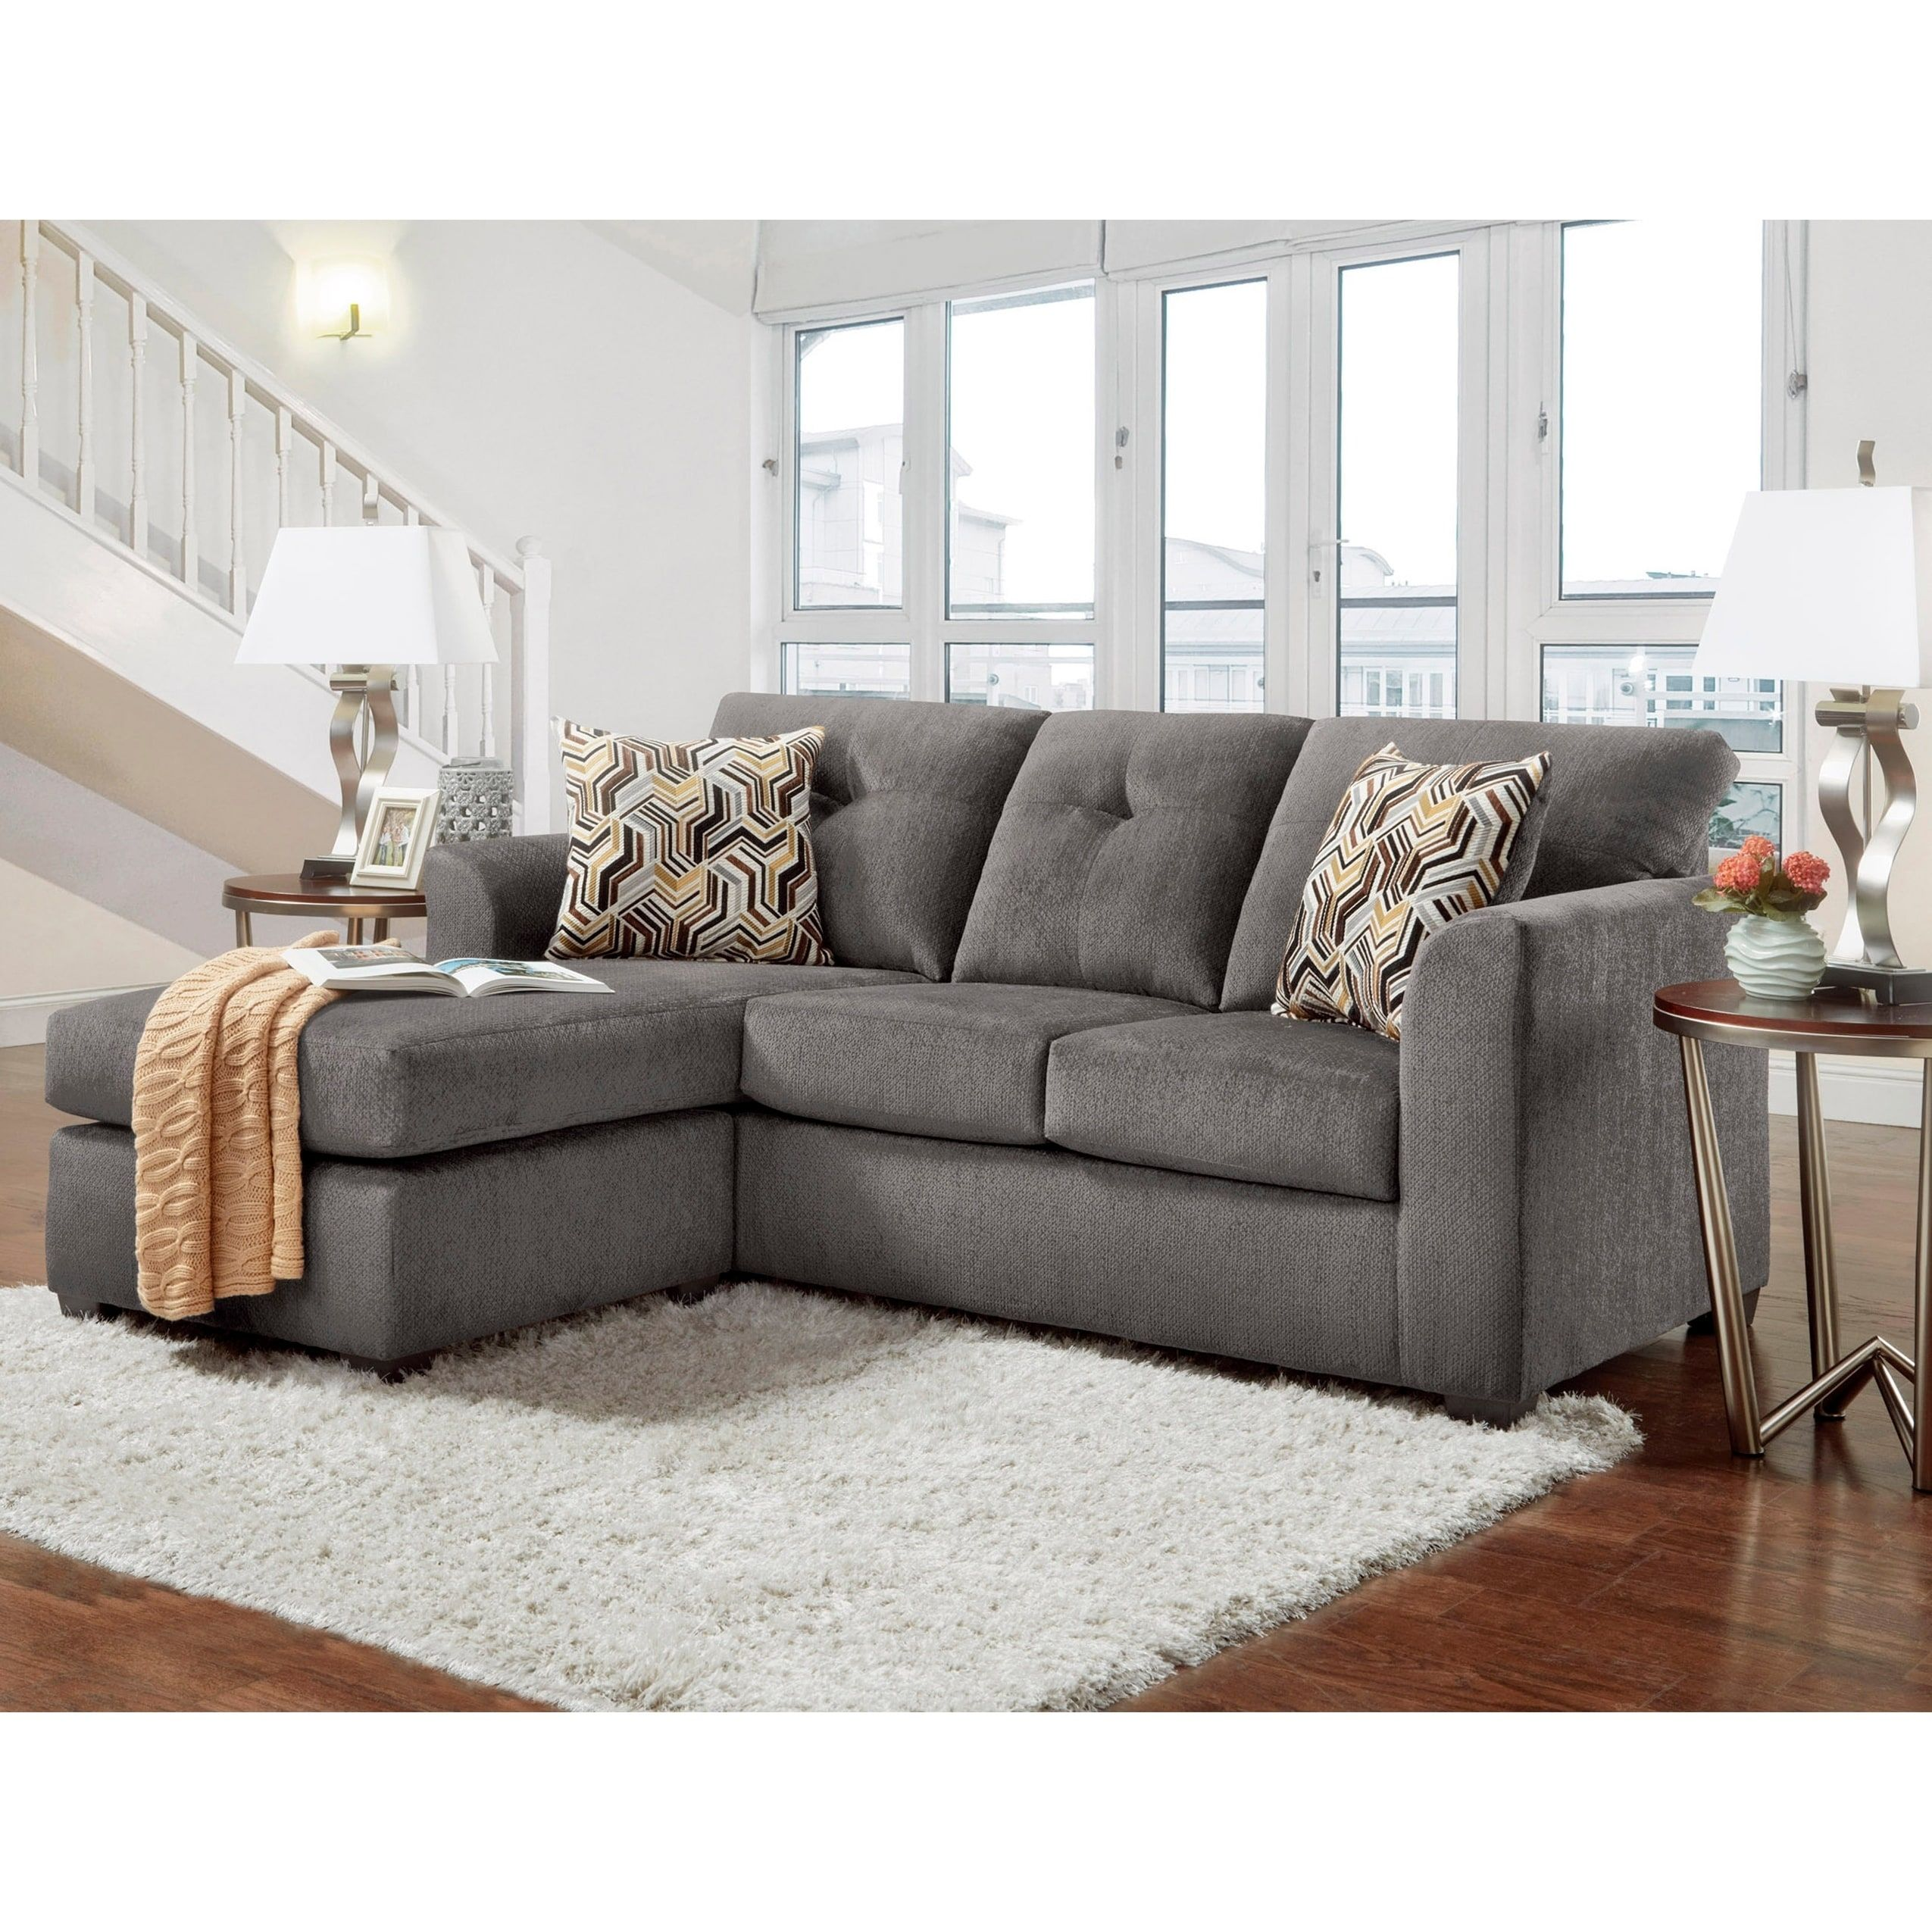 Sofatrendz Buckley Contemporary Tufted Sectional Beige